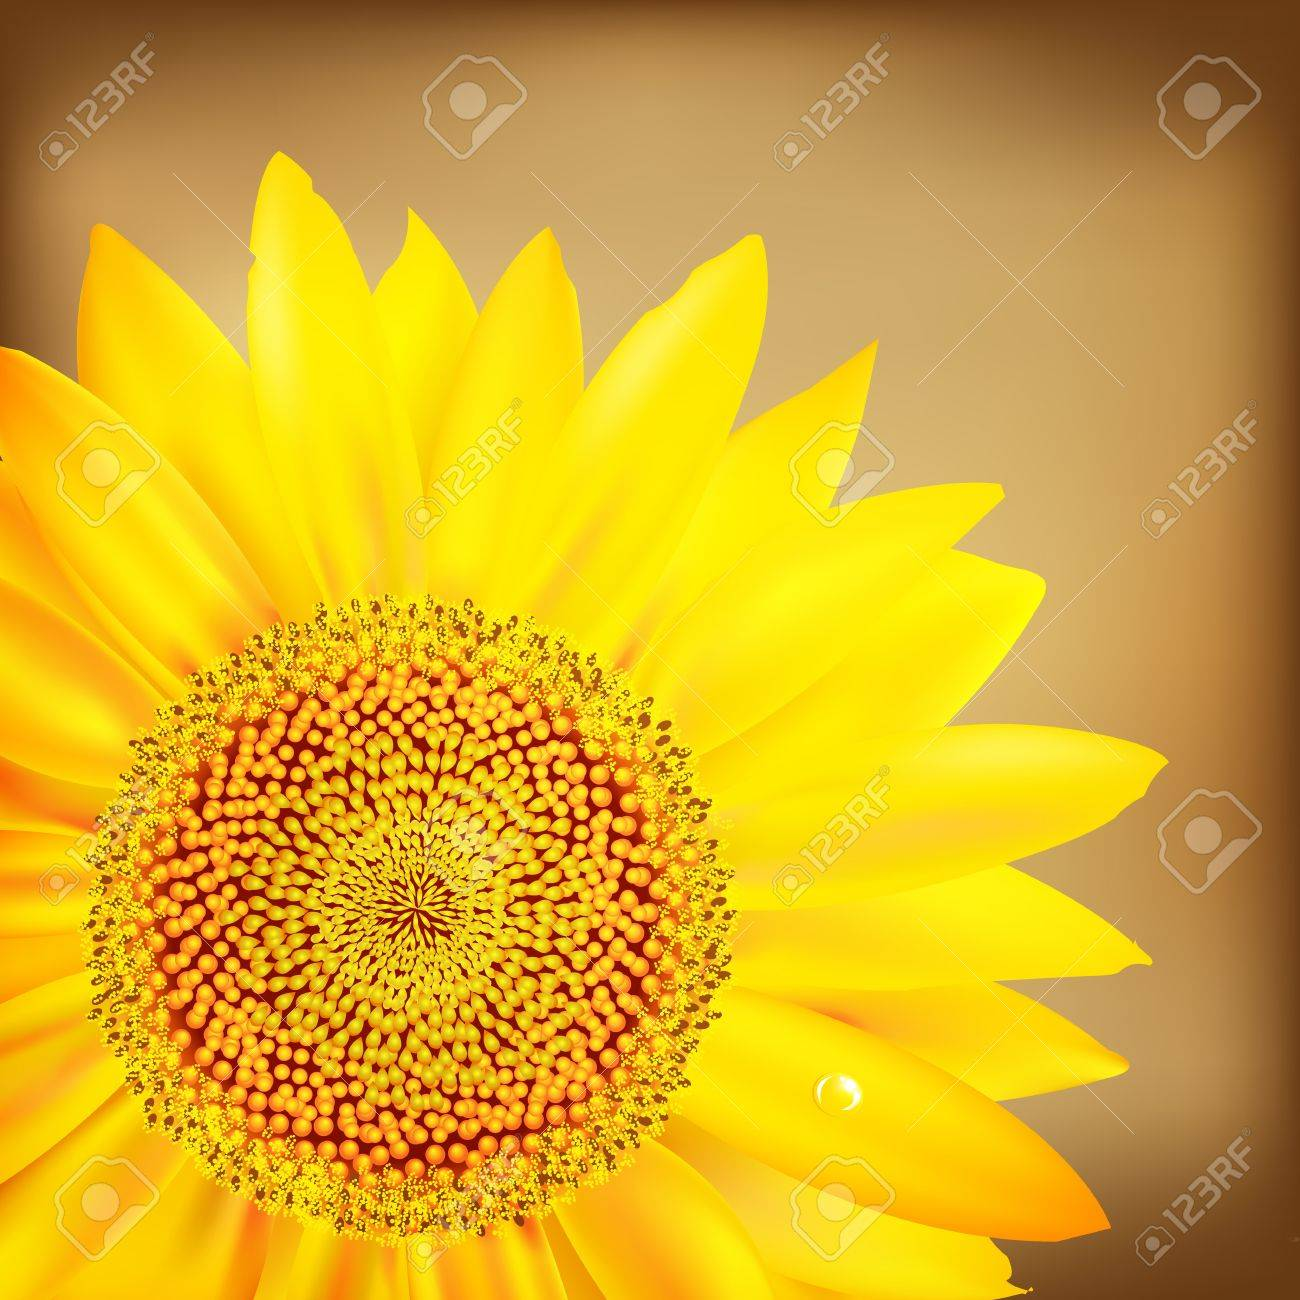 Vintage Sunflower And Old Paper, Vector Illustration Stock Vector - 11349815